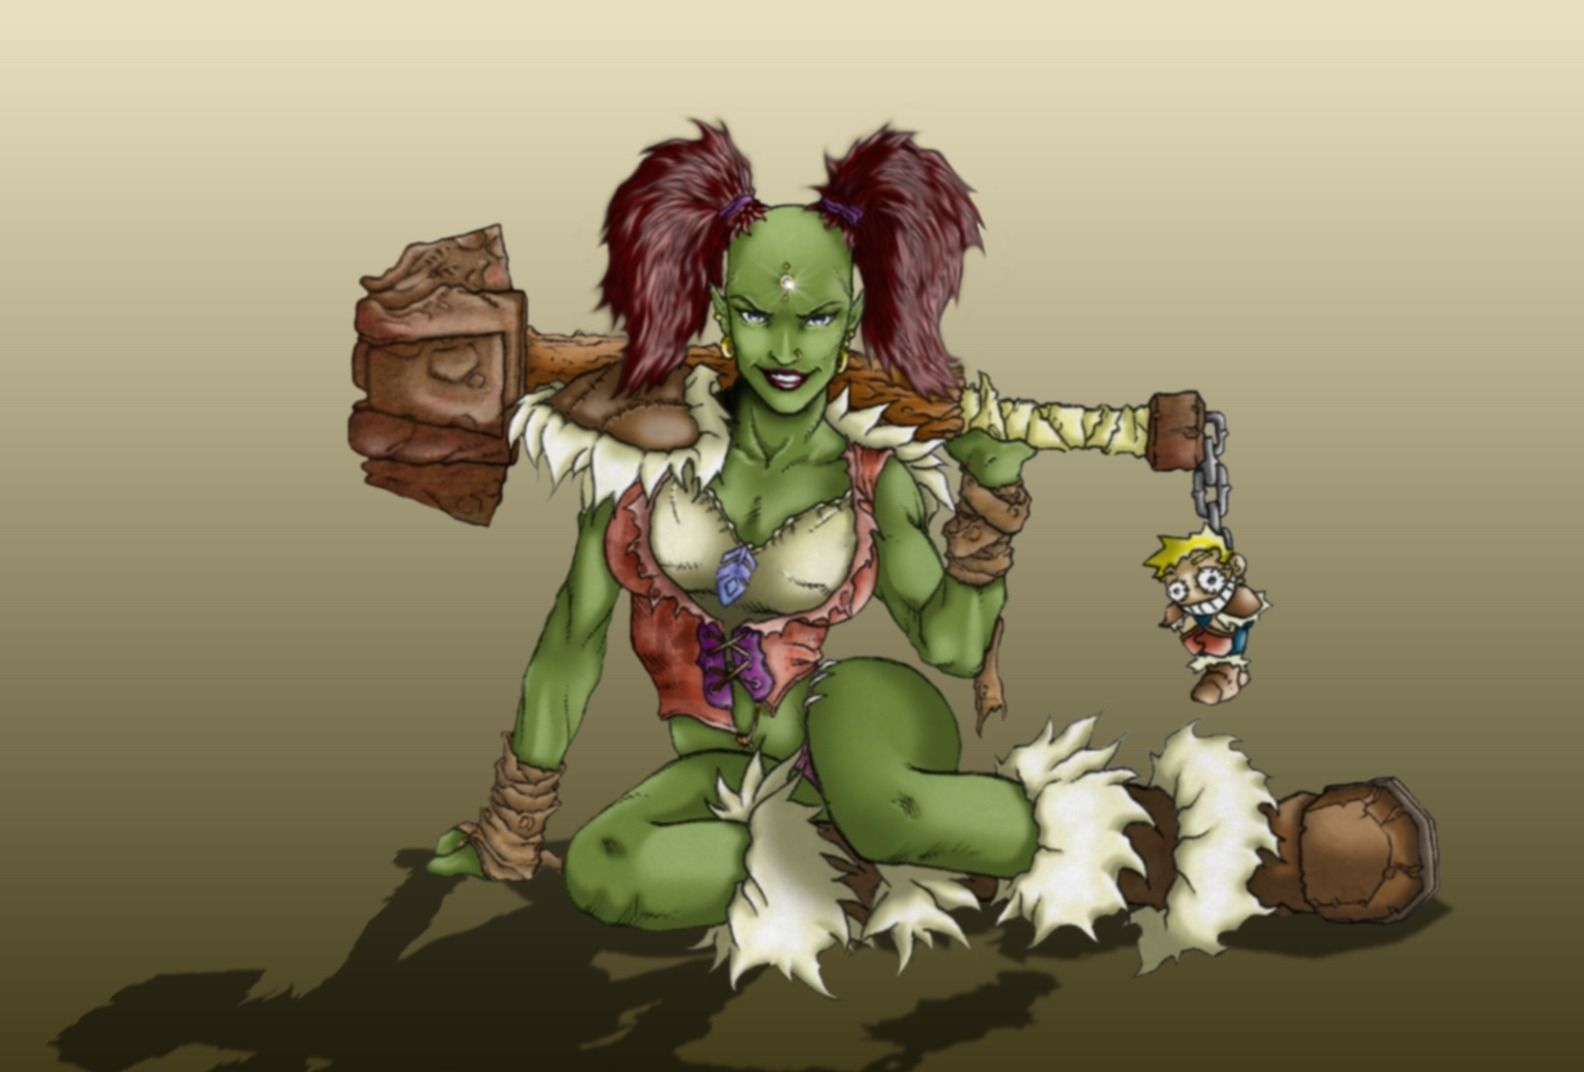 Word of warcraft ork porn exploited images